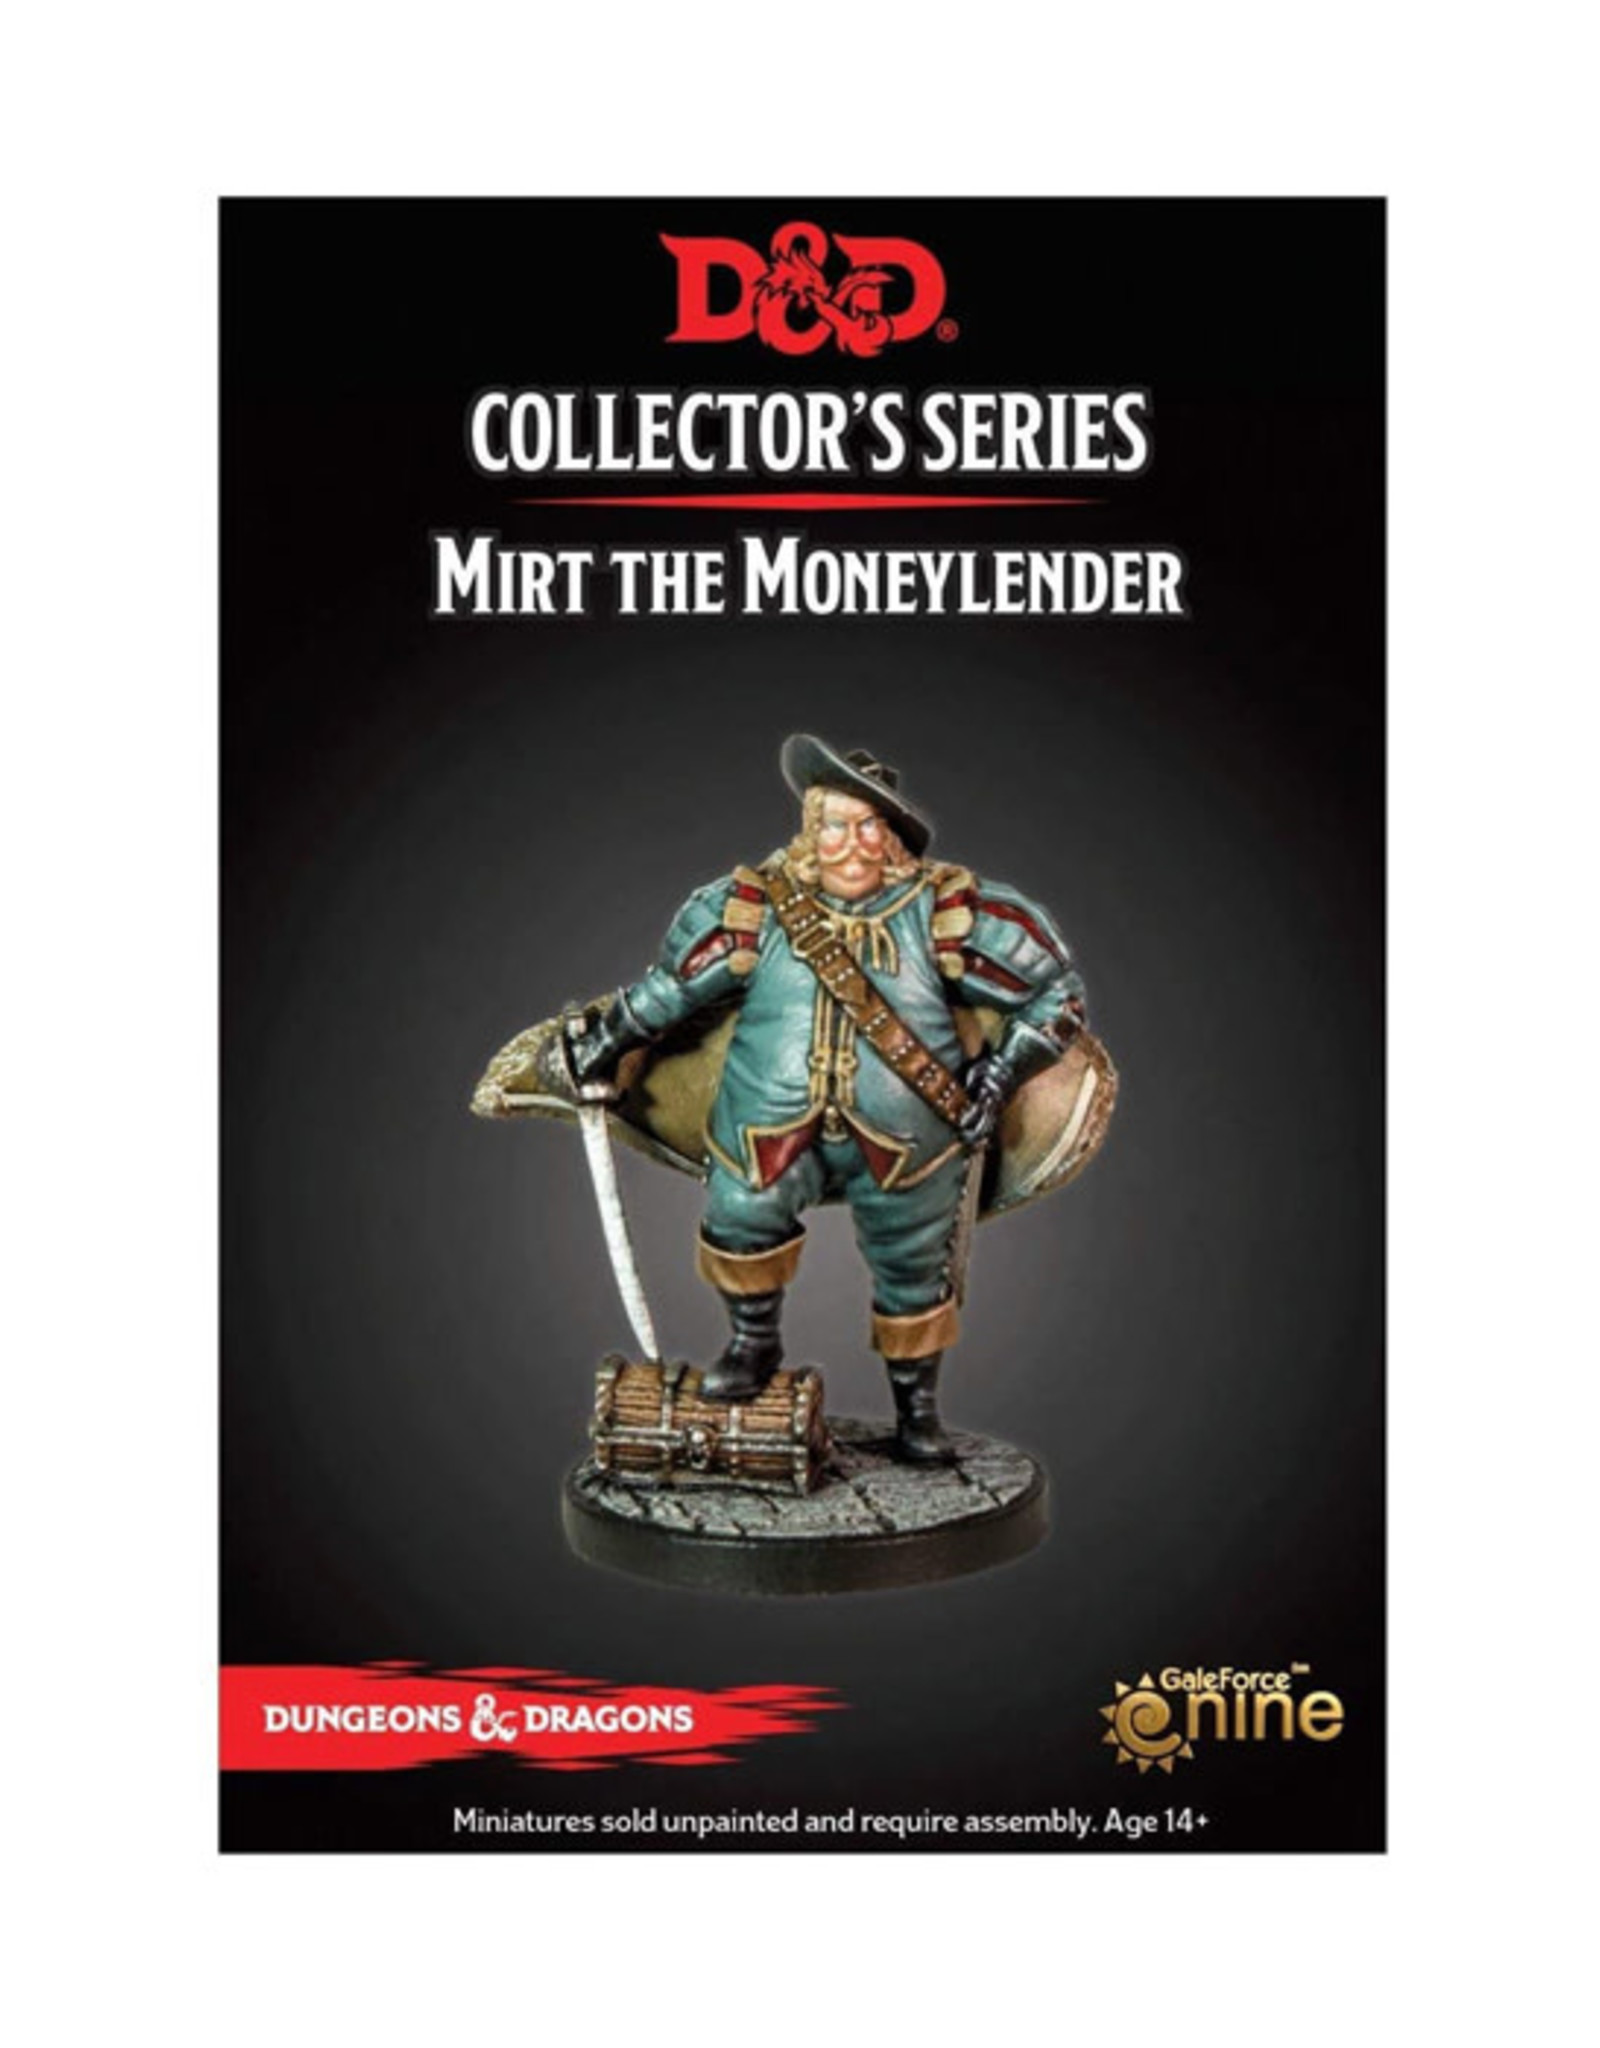 Dungeons & Dragons Dungeons & Dragons: Collector's Series - Mirt the Moneylender